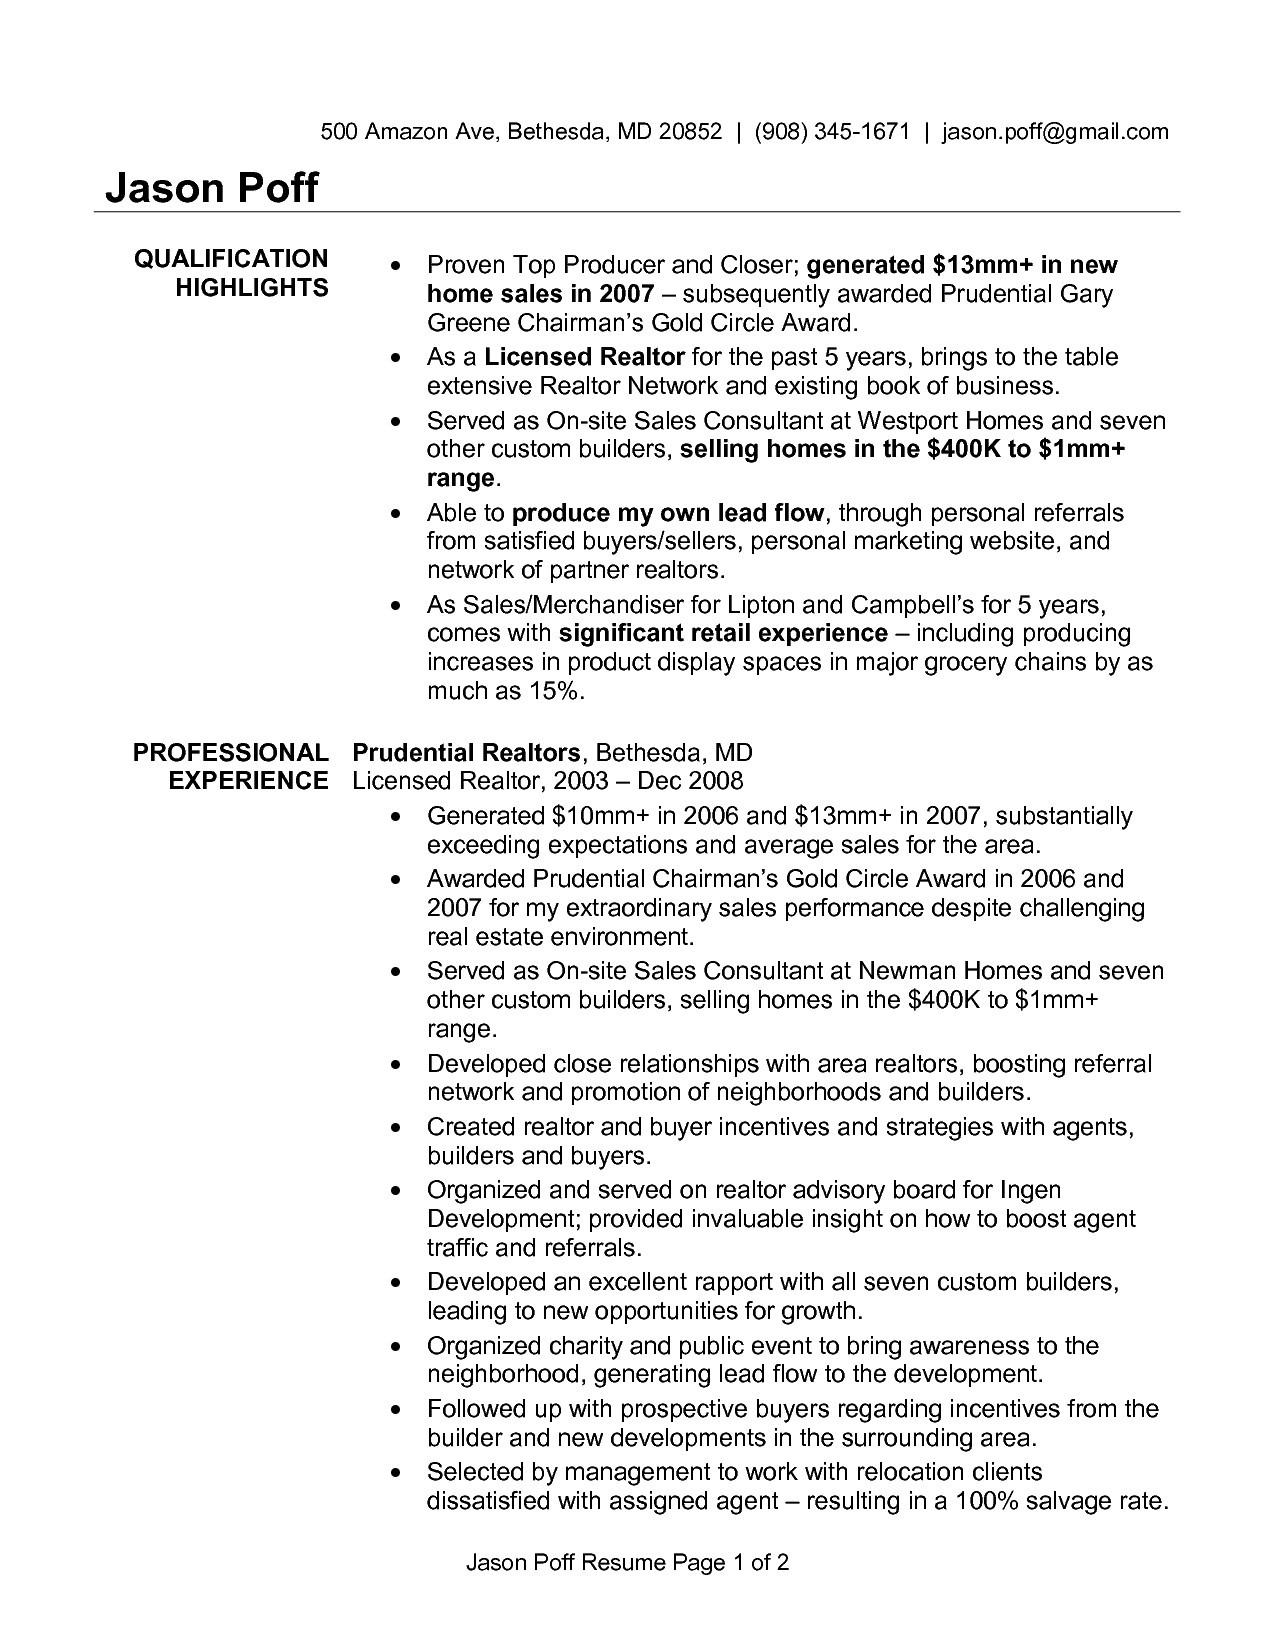 Real Estate Agent Job Description for Resume - Real Estate Agent Resume Unique Resume Sample Highlights